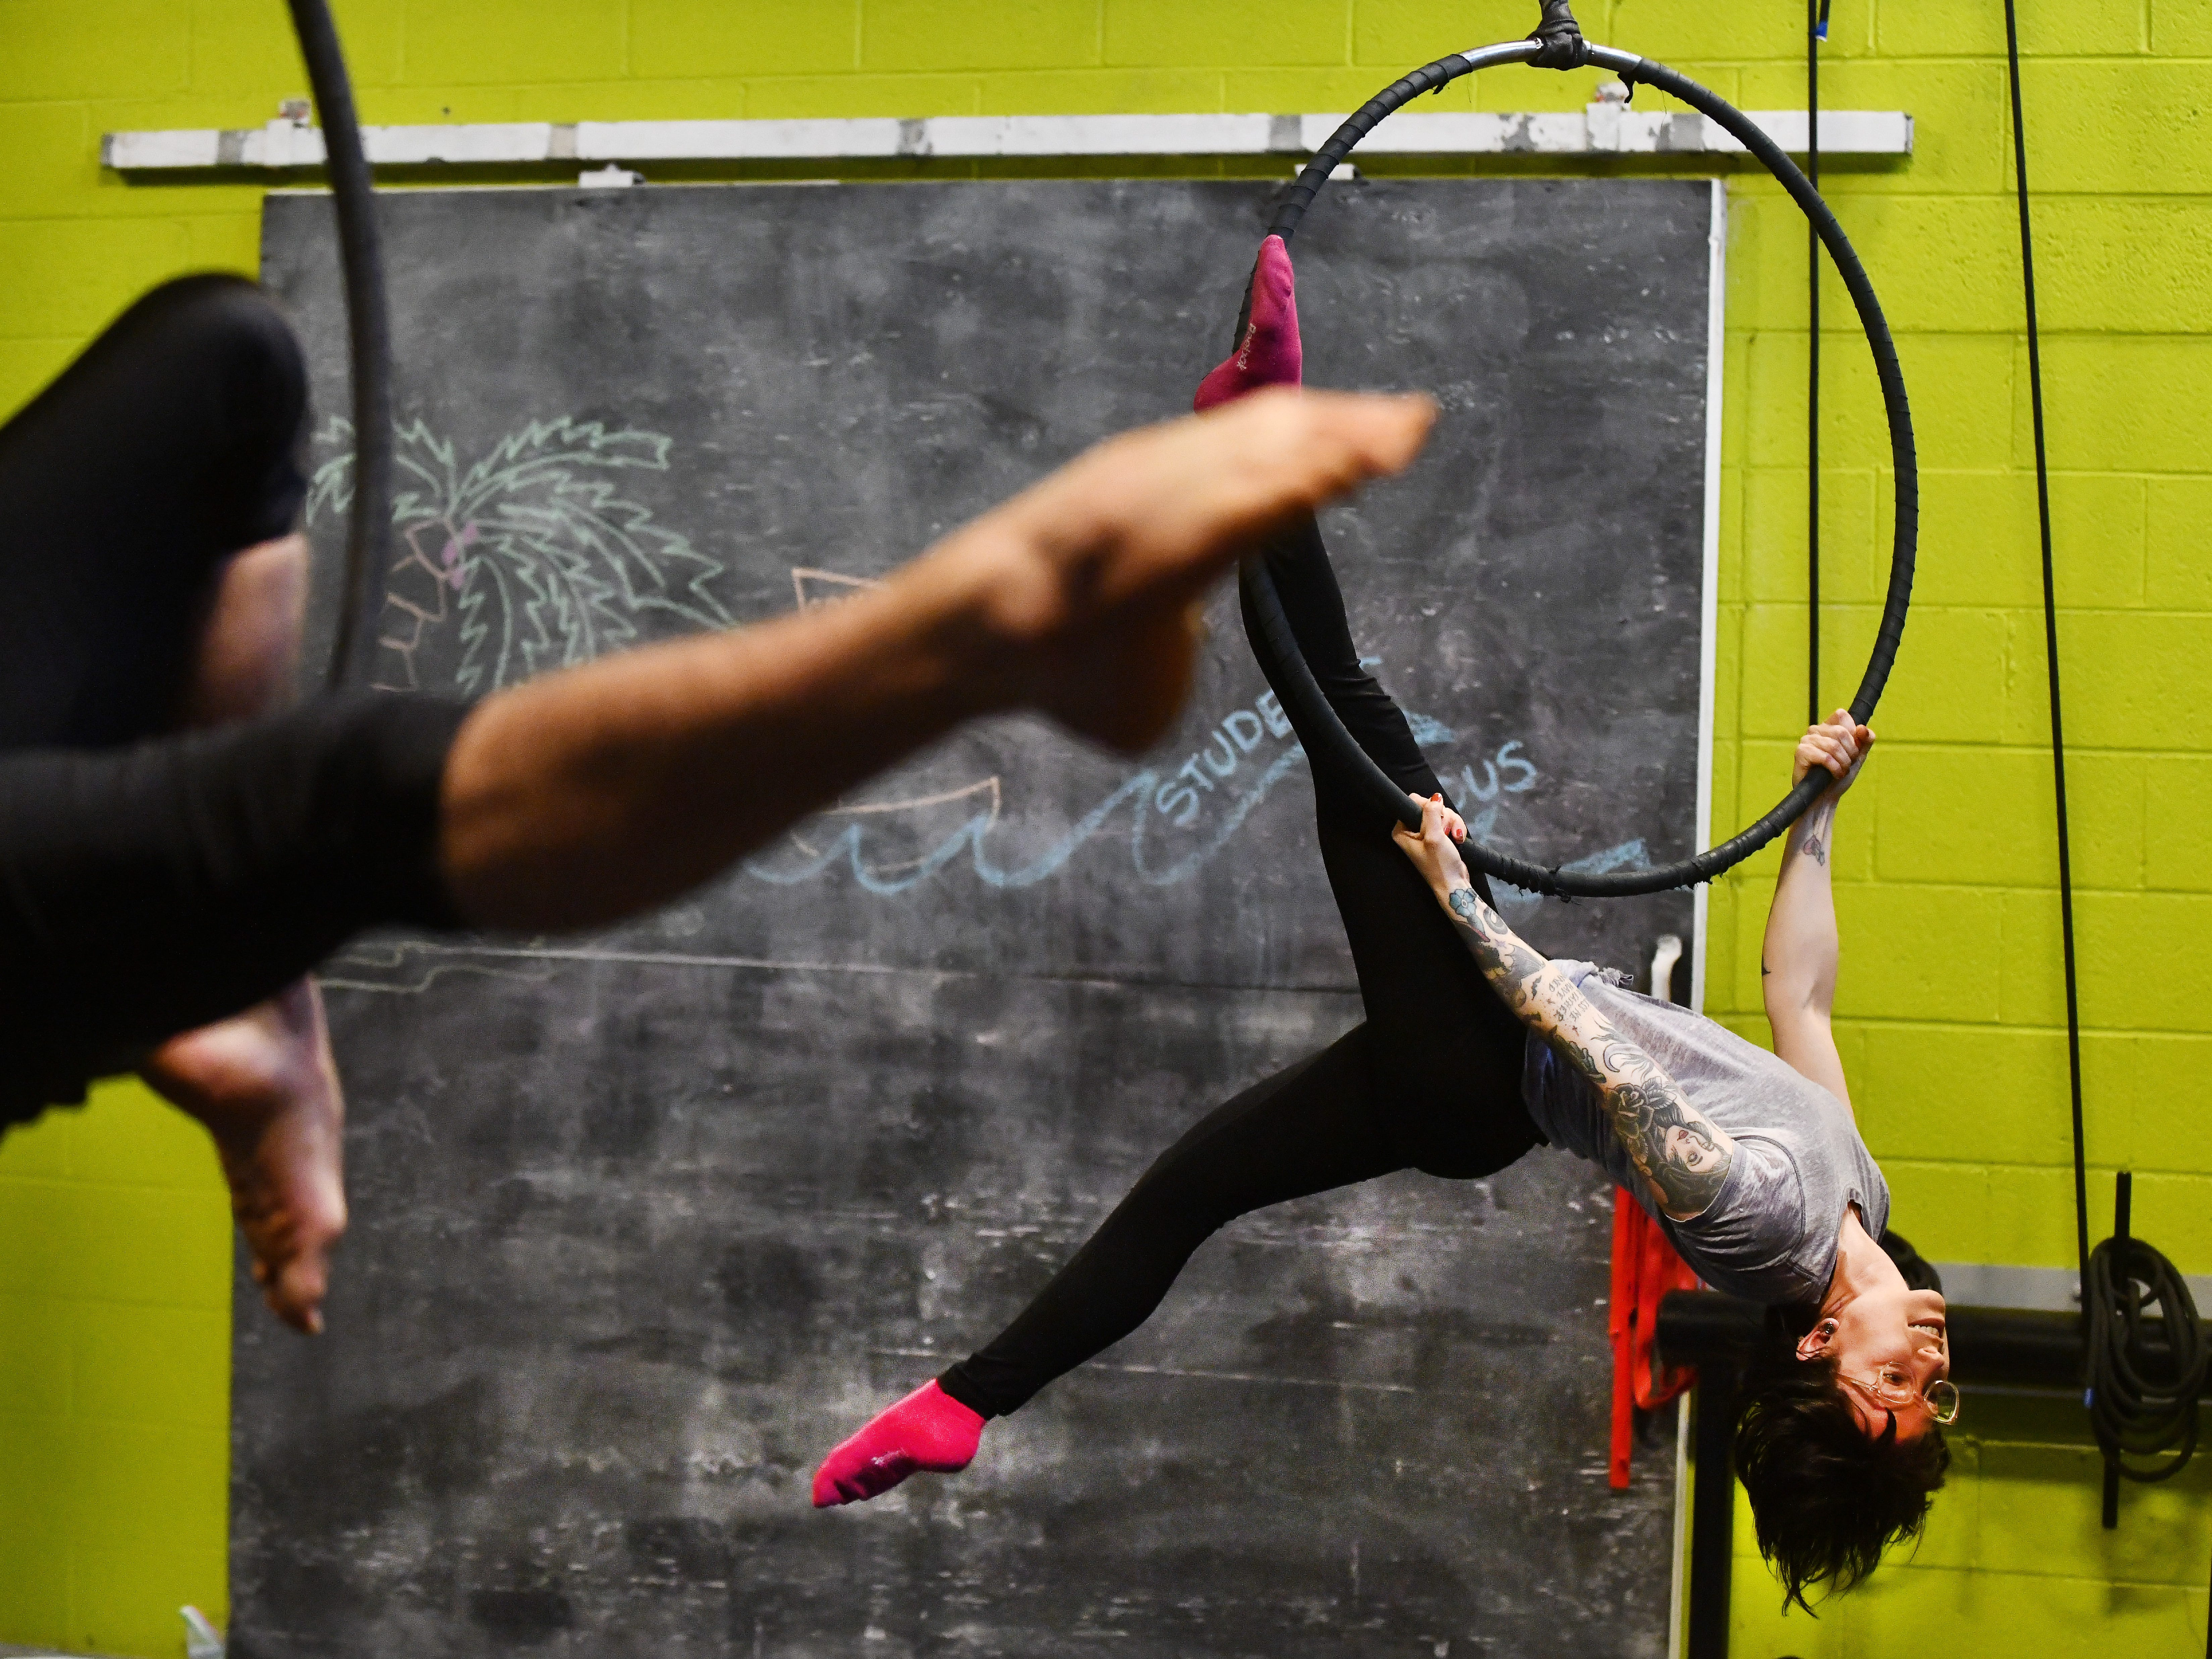 Instructor Sara Duhaime demonstrates a position during a class at the Detroit Flyhouse Circus School in Detroit on April 4, 2018.